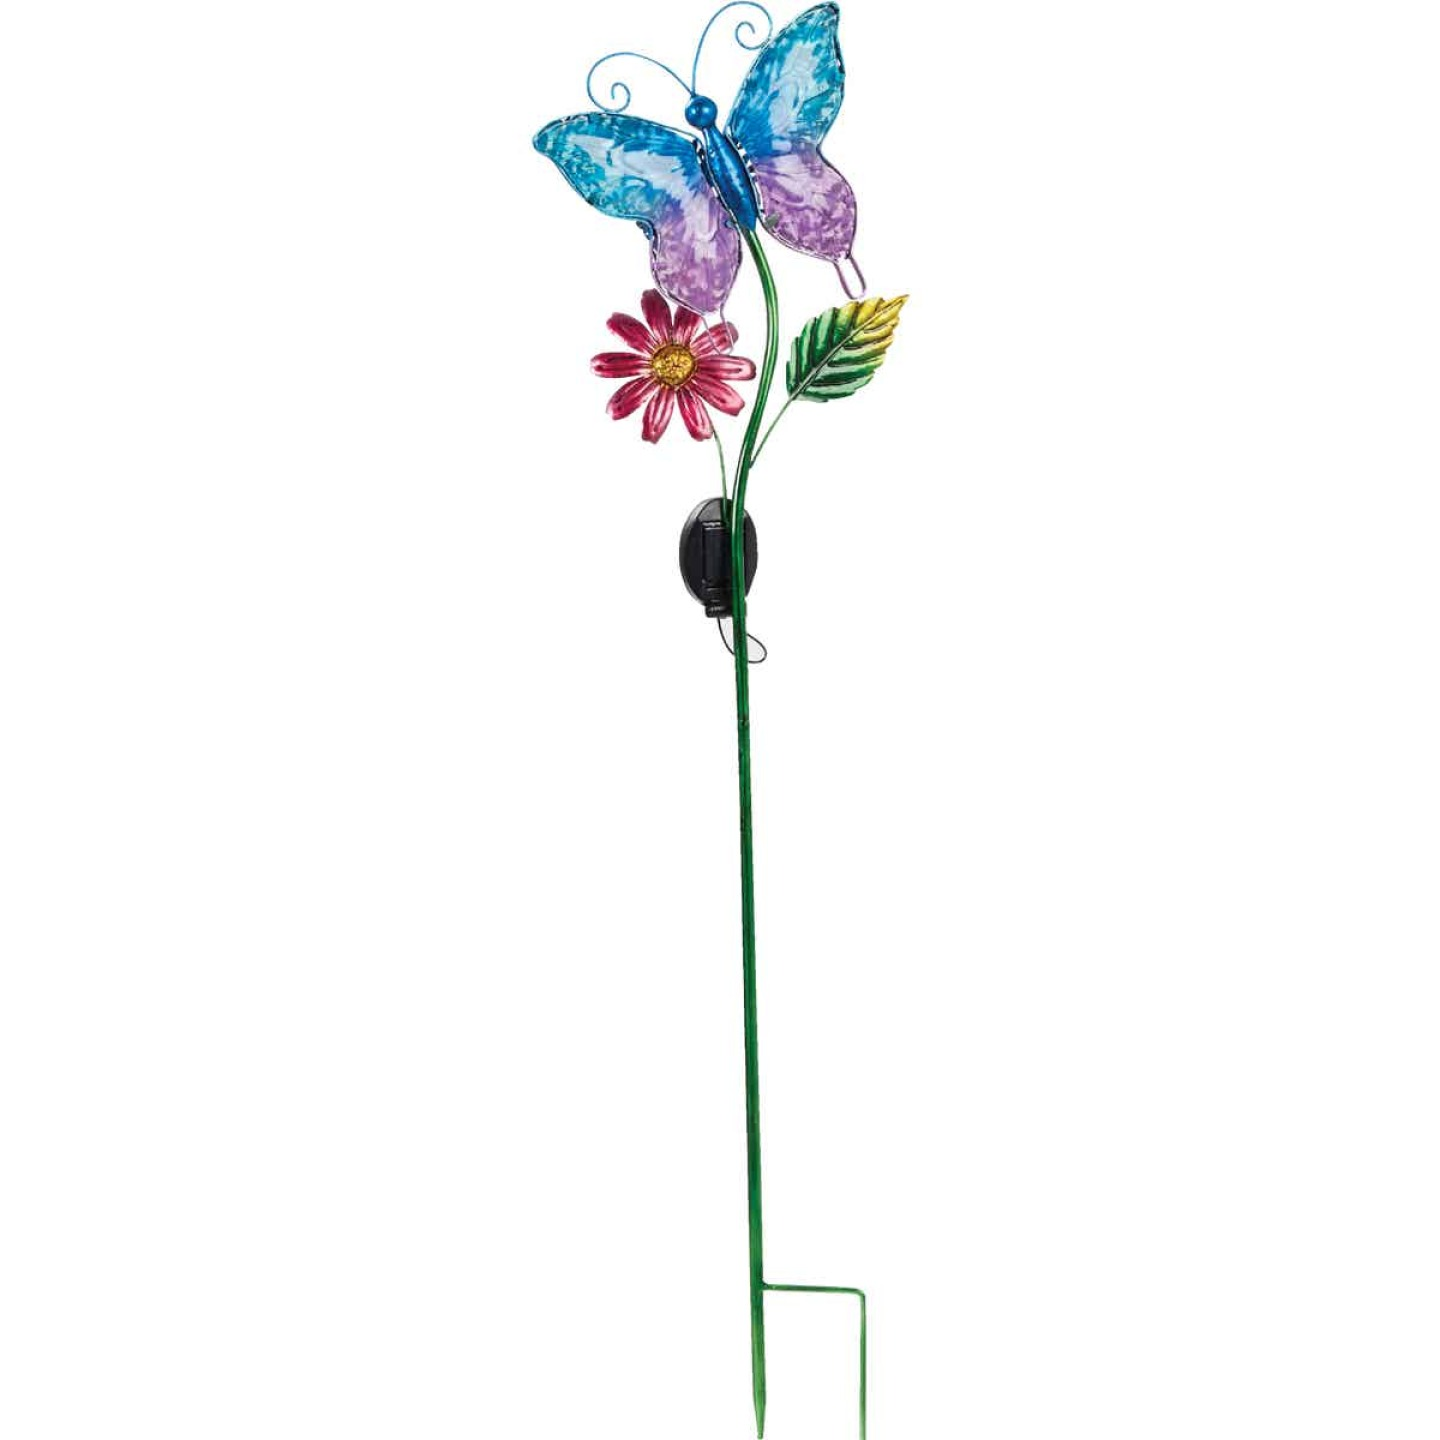 Outdoor Expressions Steel & Glass 20.5 In. H. Solar Stake Light Image 6